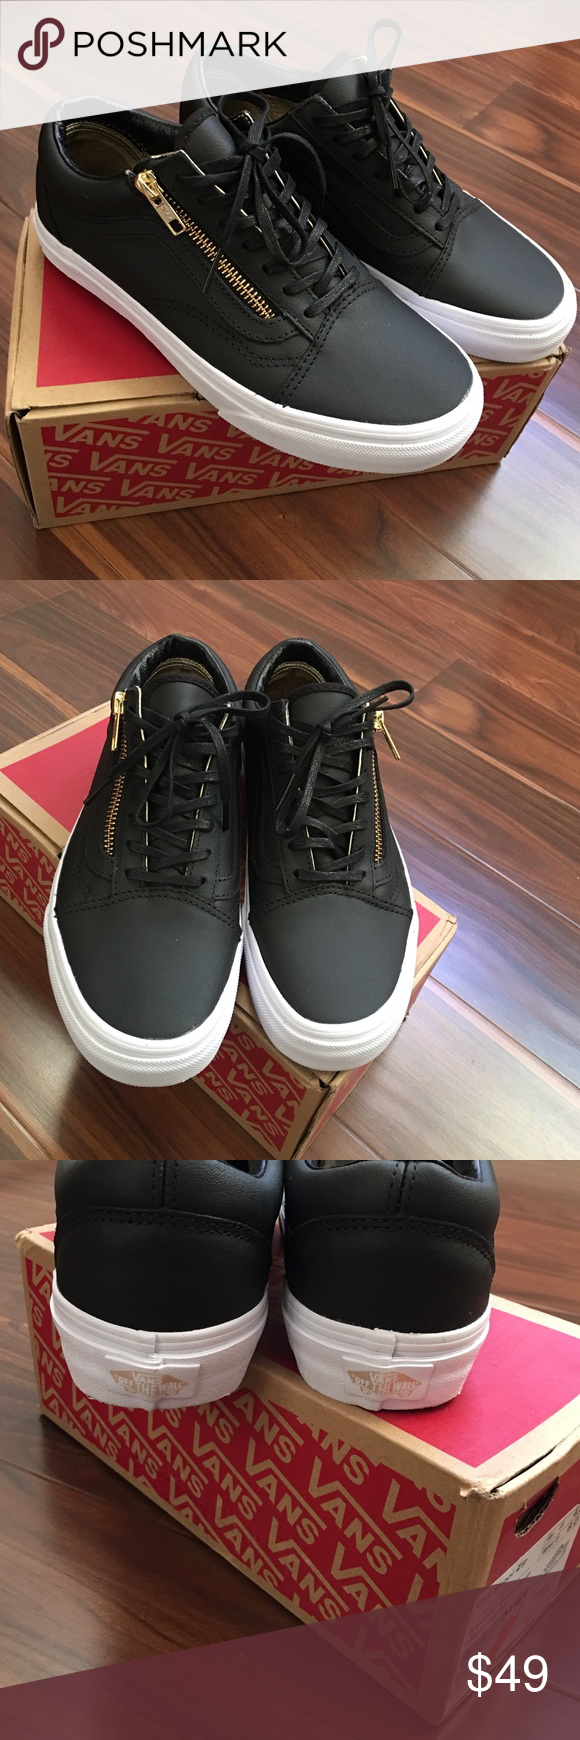 vans old skool black women 4.5